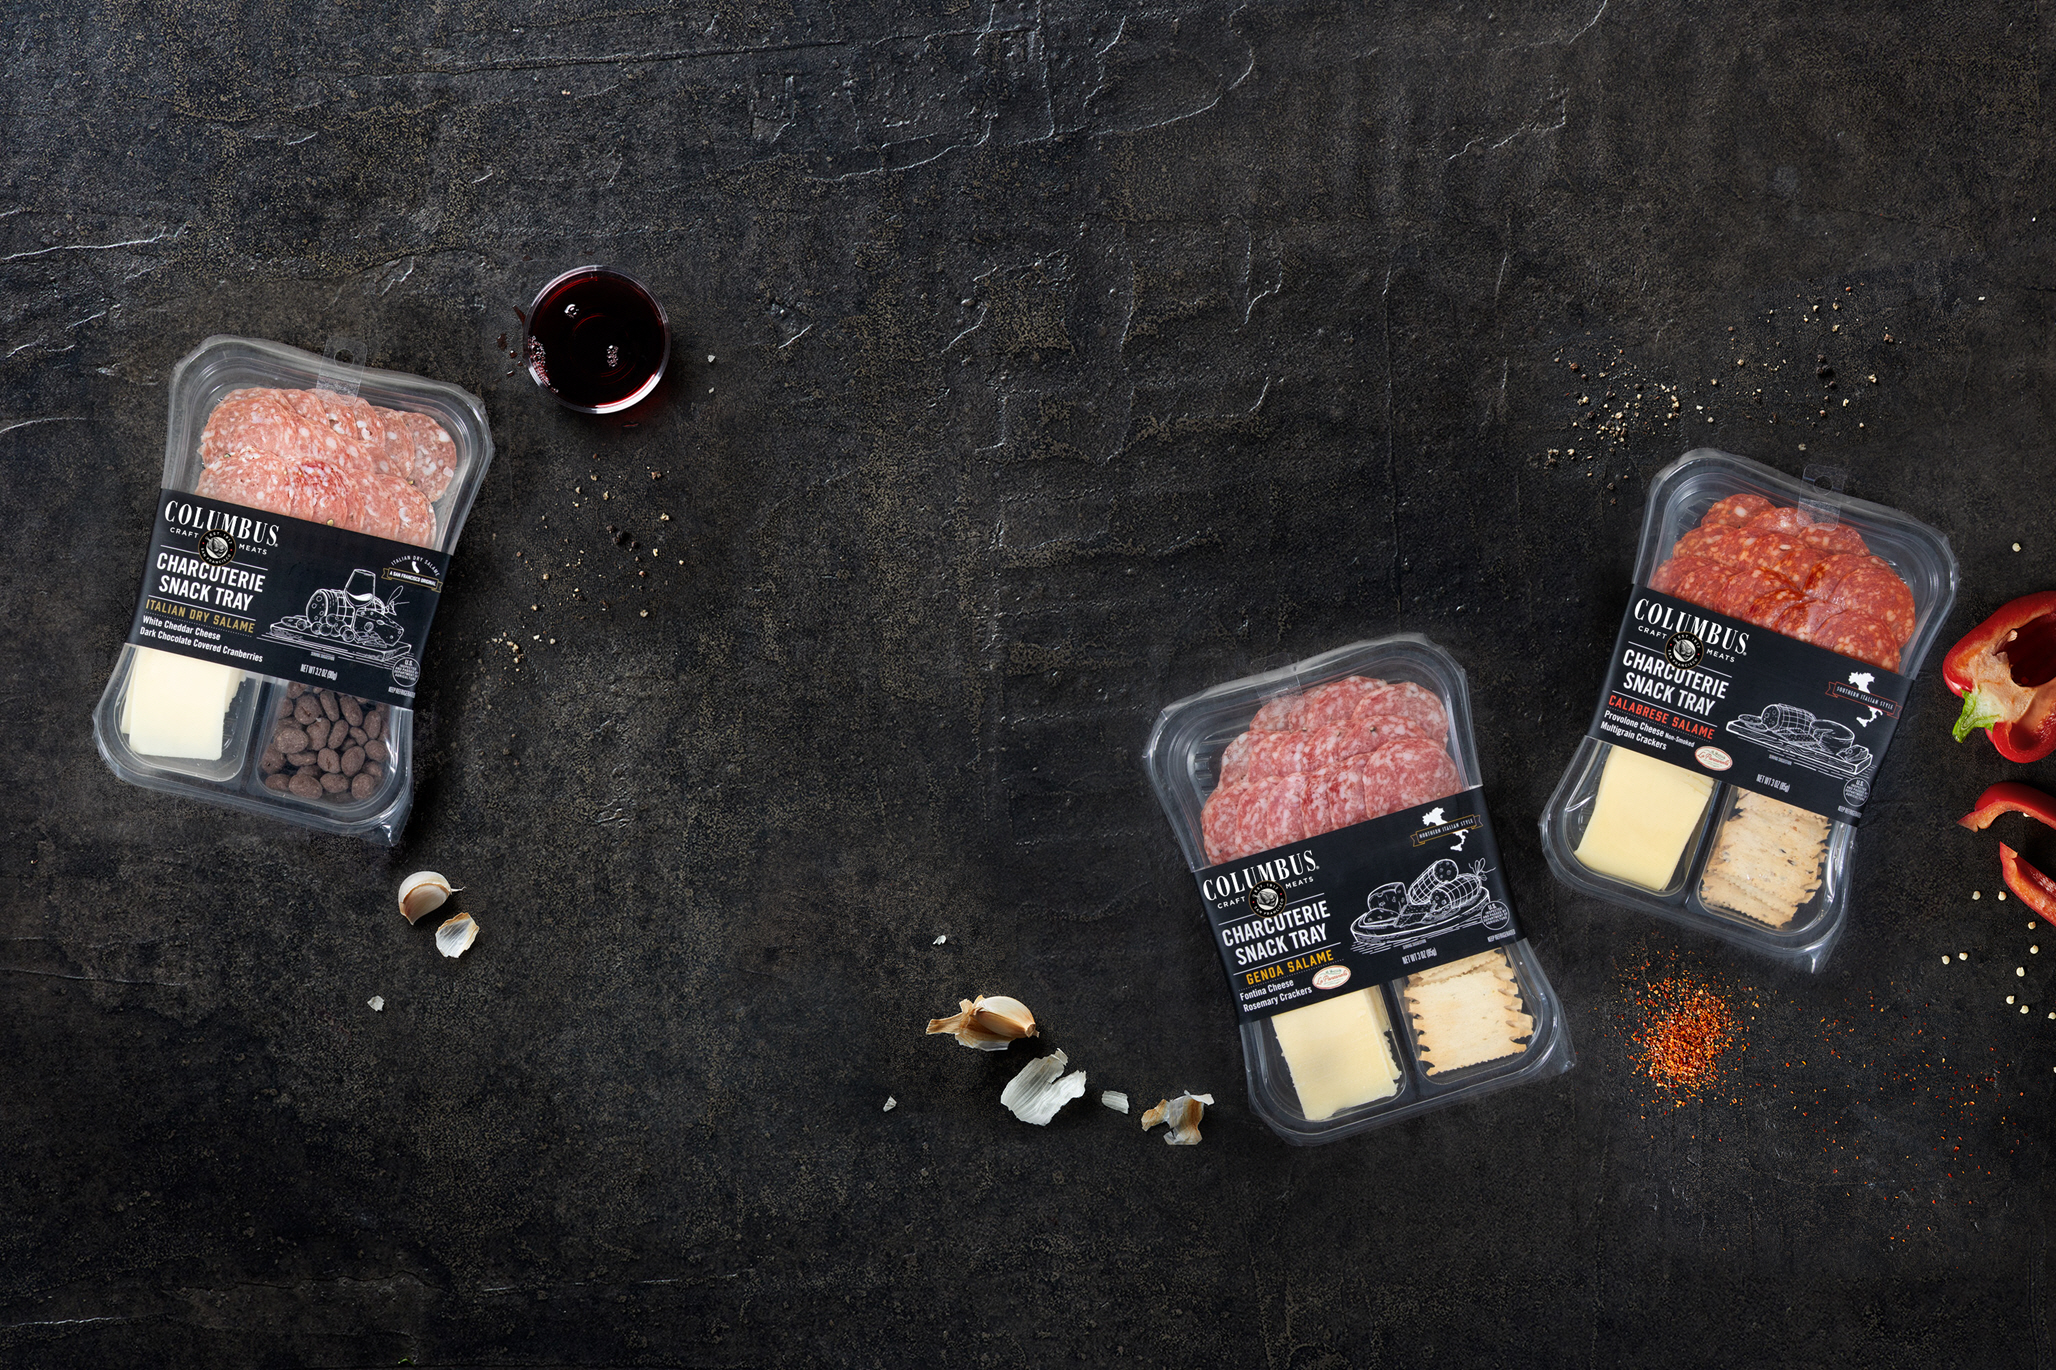 columbus craft meats charcuterie snack tray packages